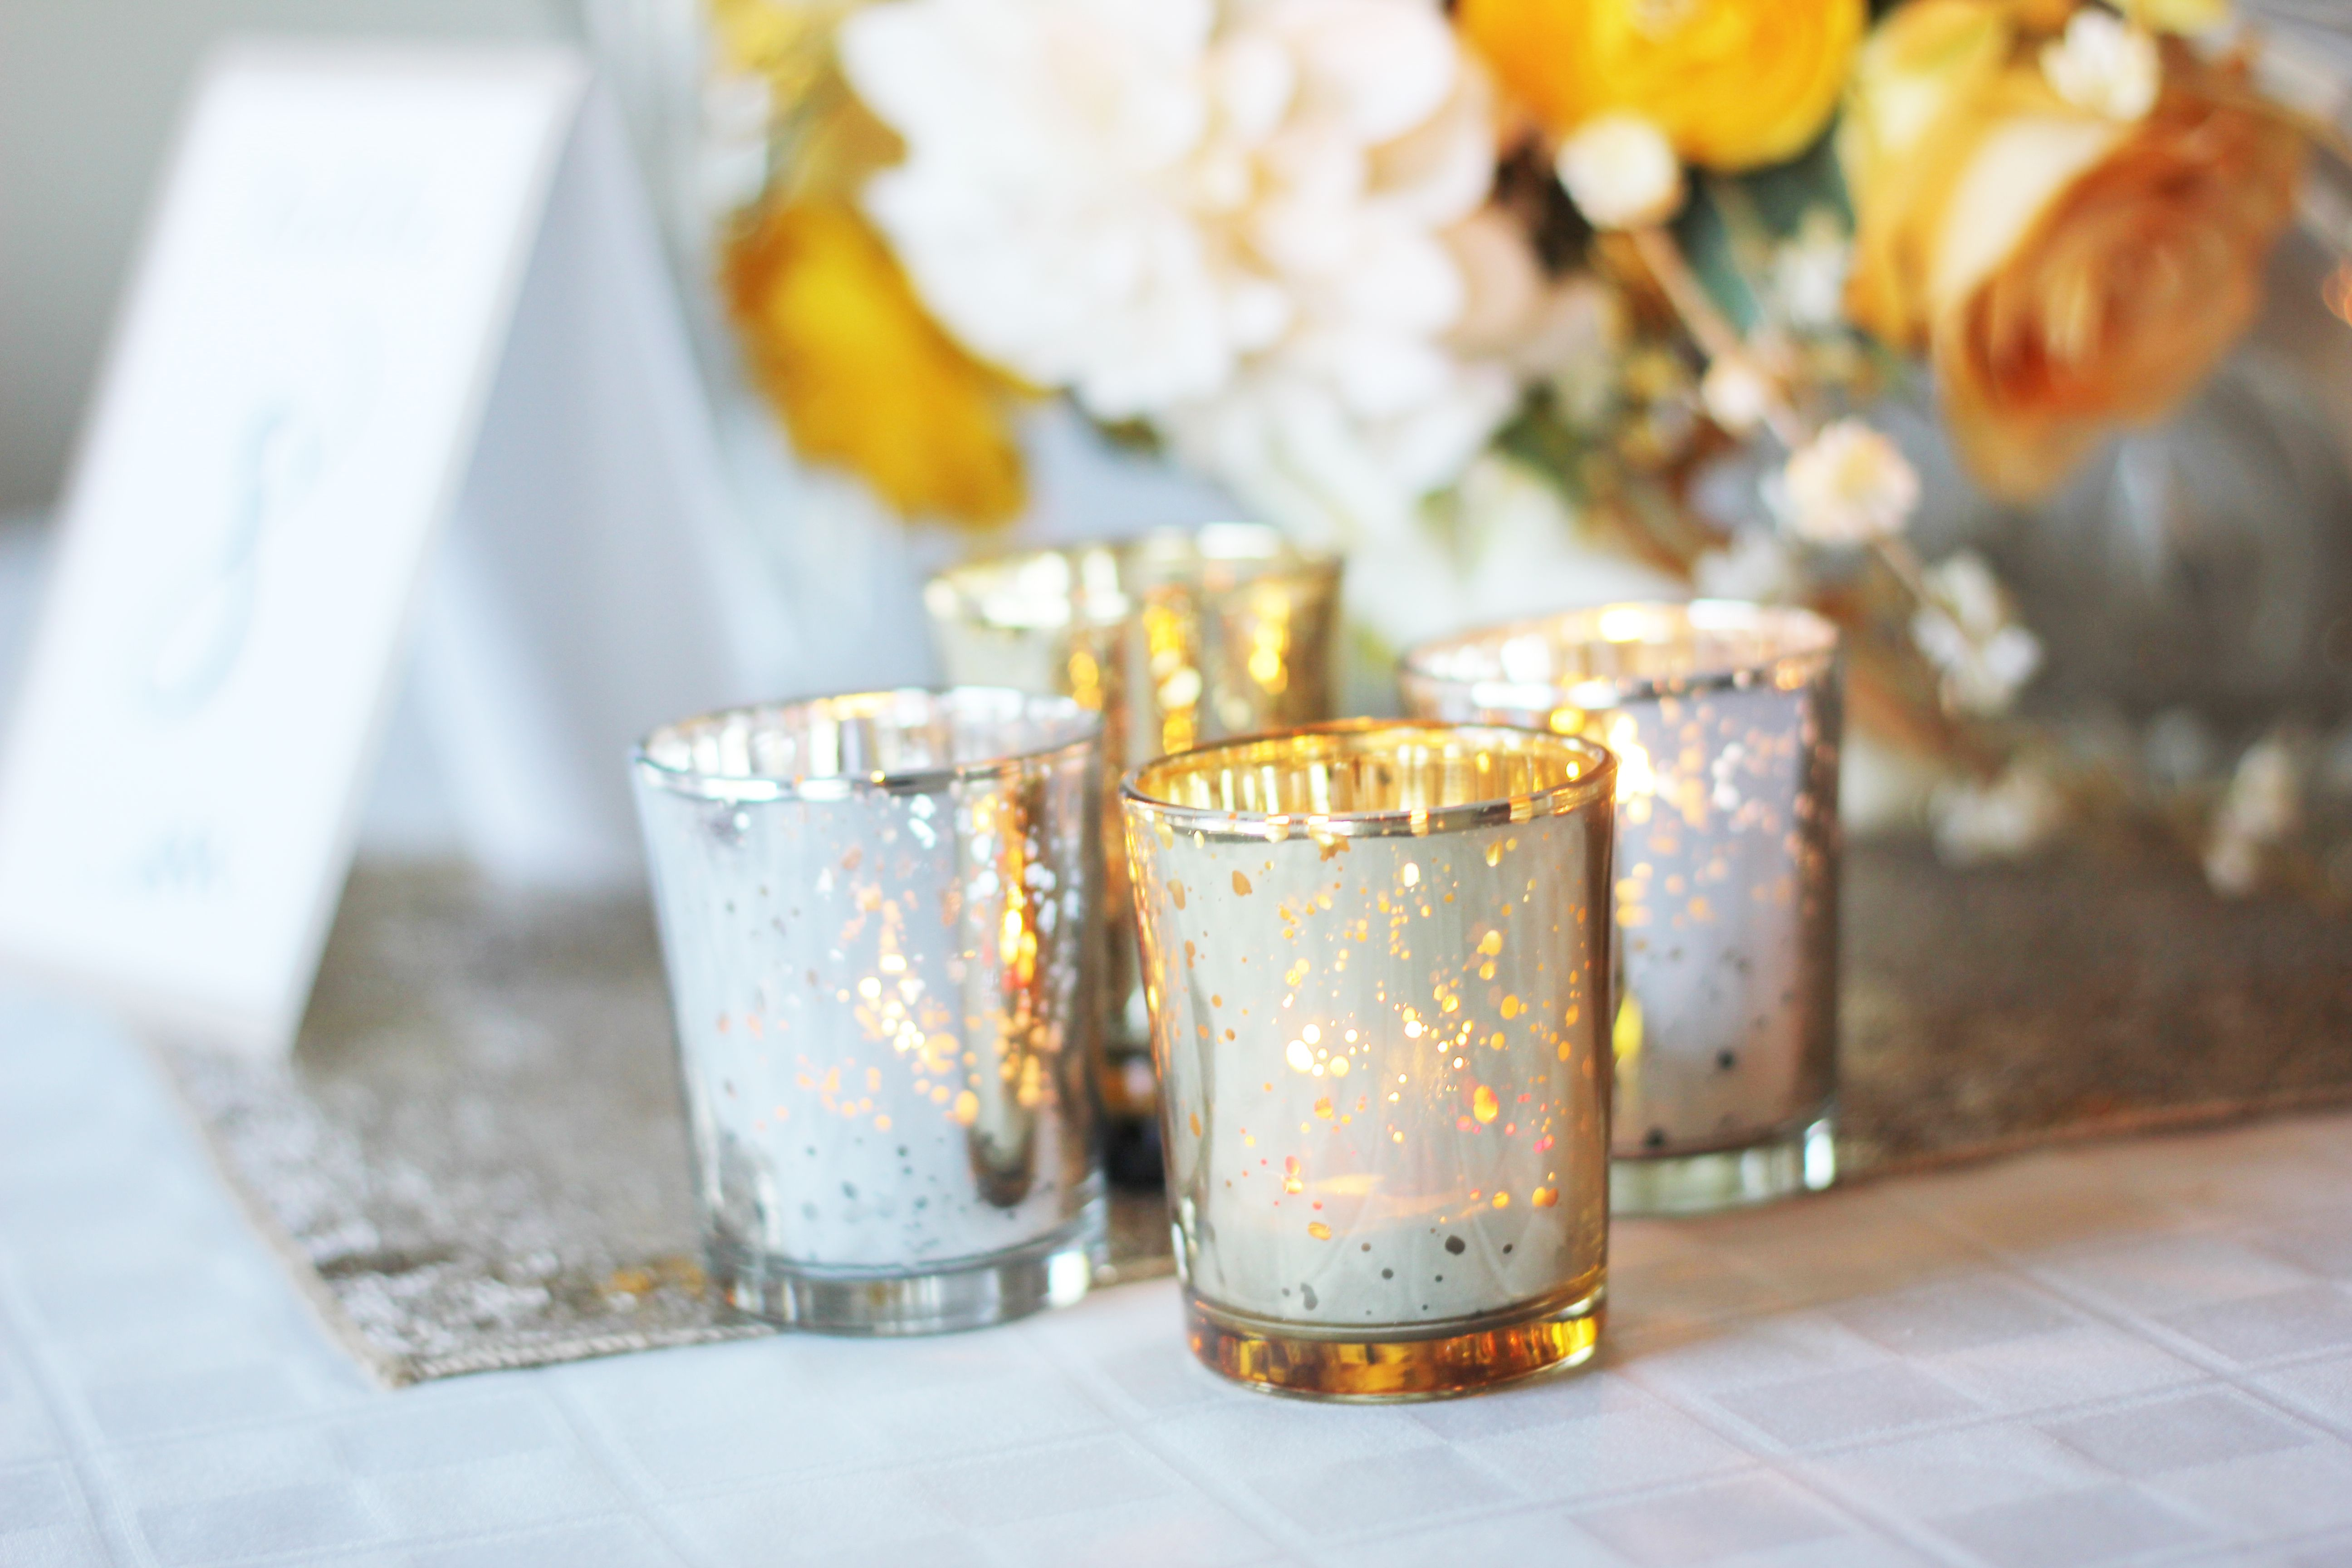 Add a warm glow and tasteful elegance to any home or event décor